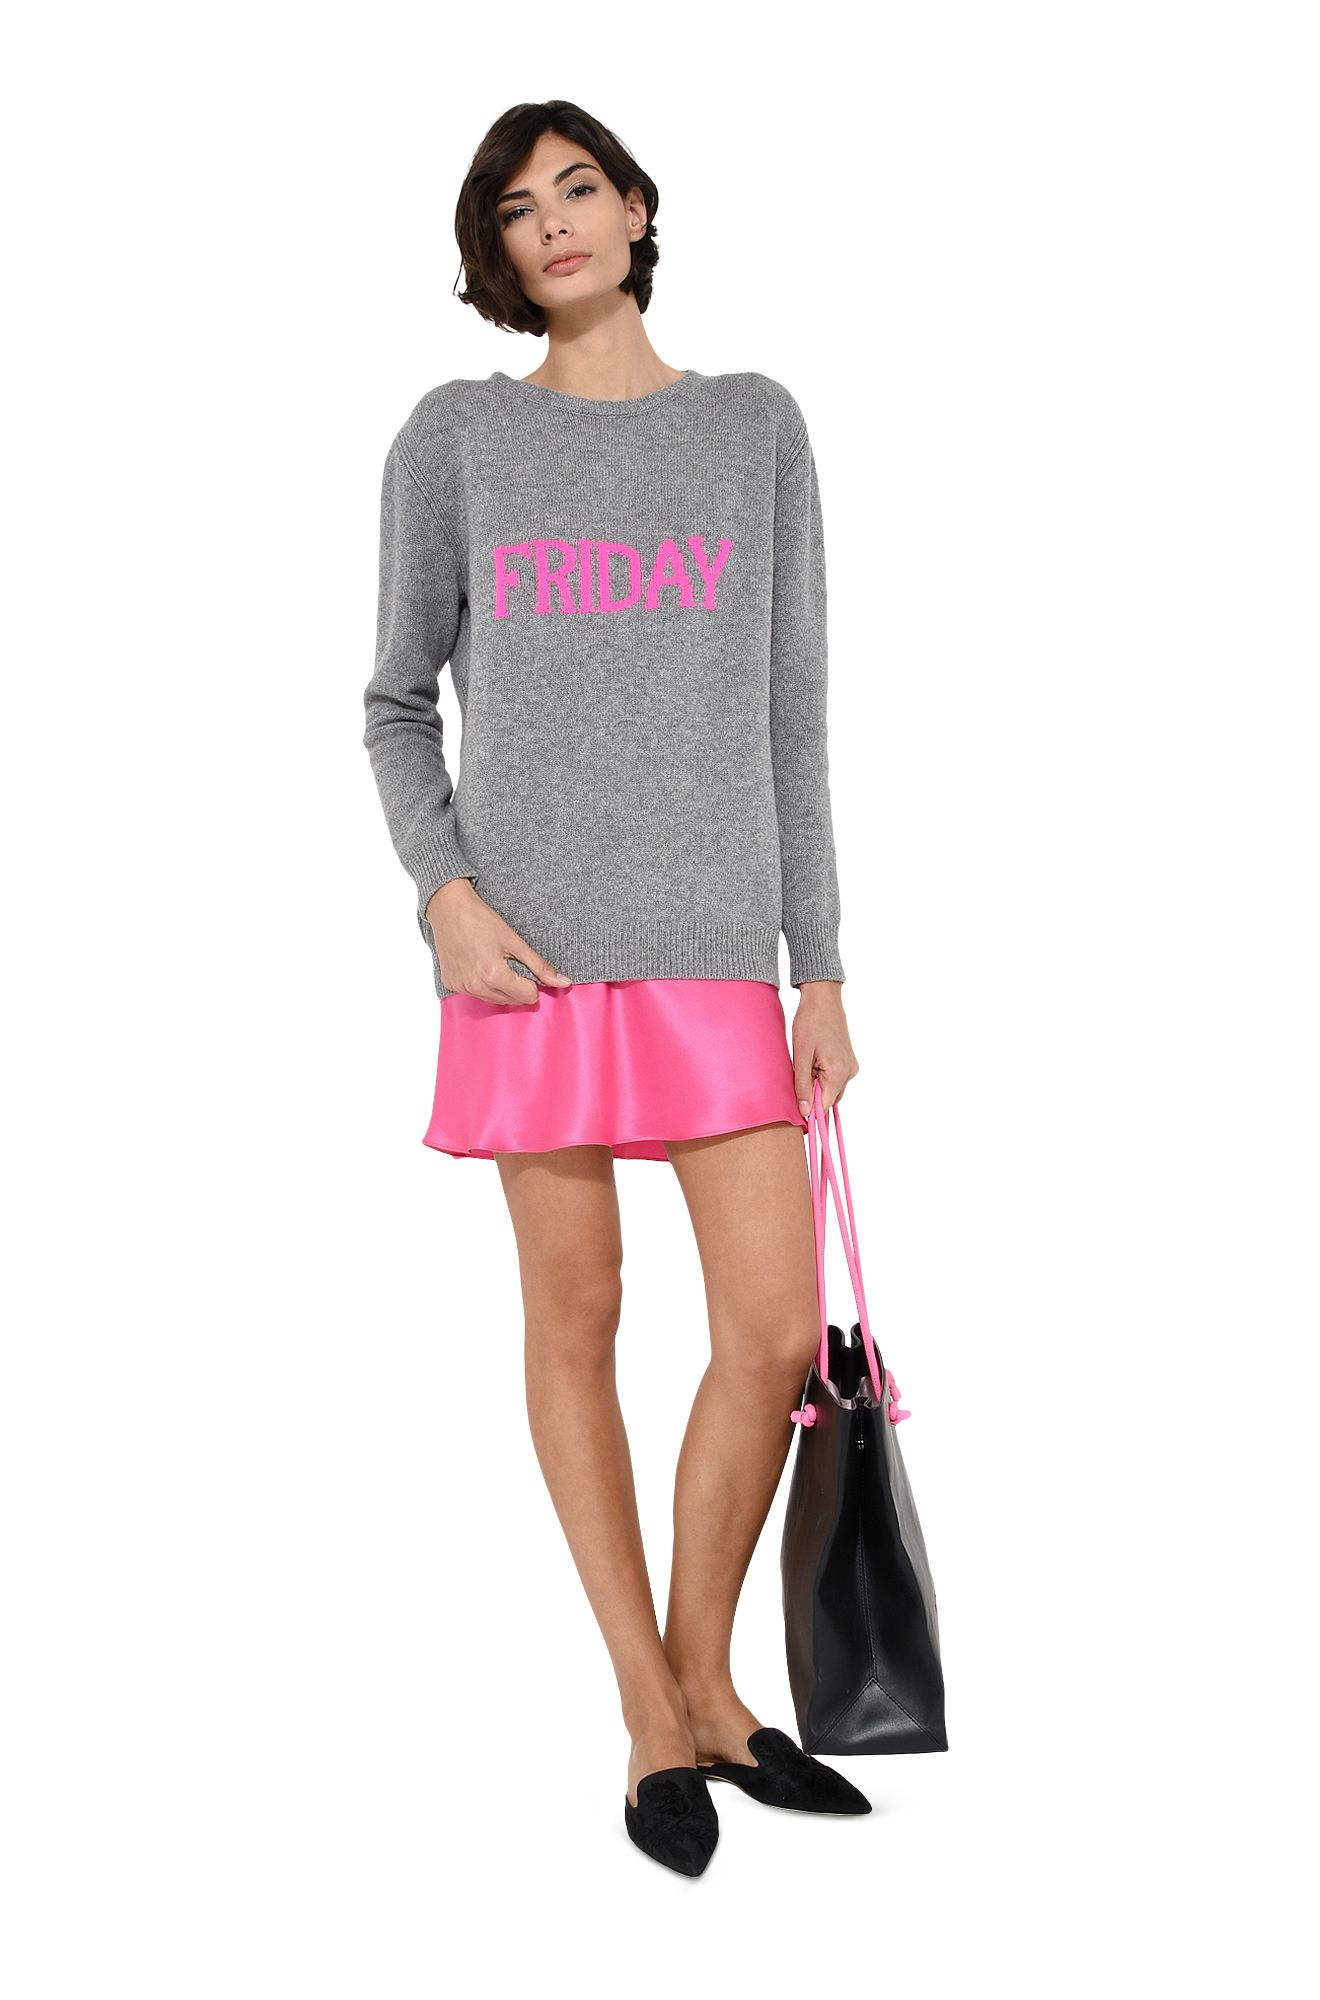 Friday fluo sweater